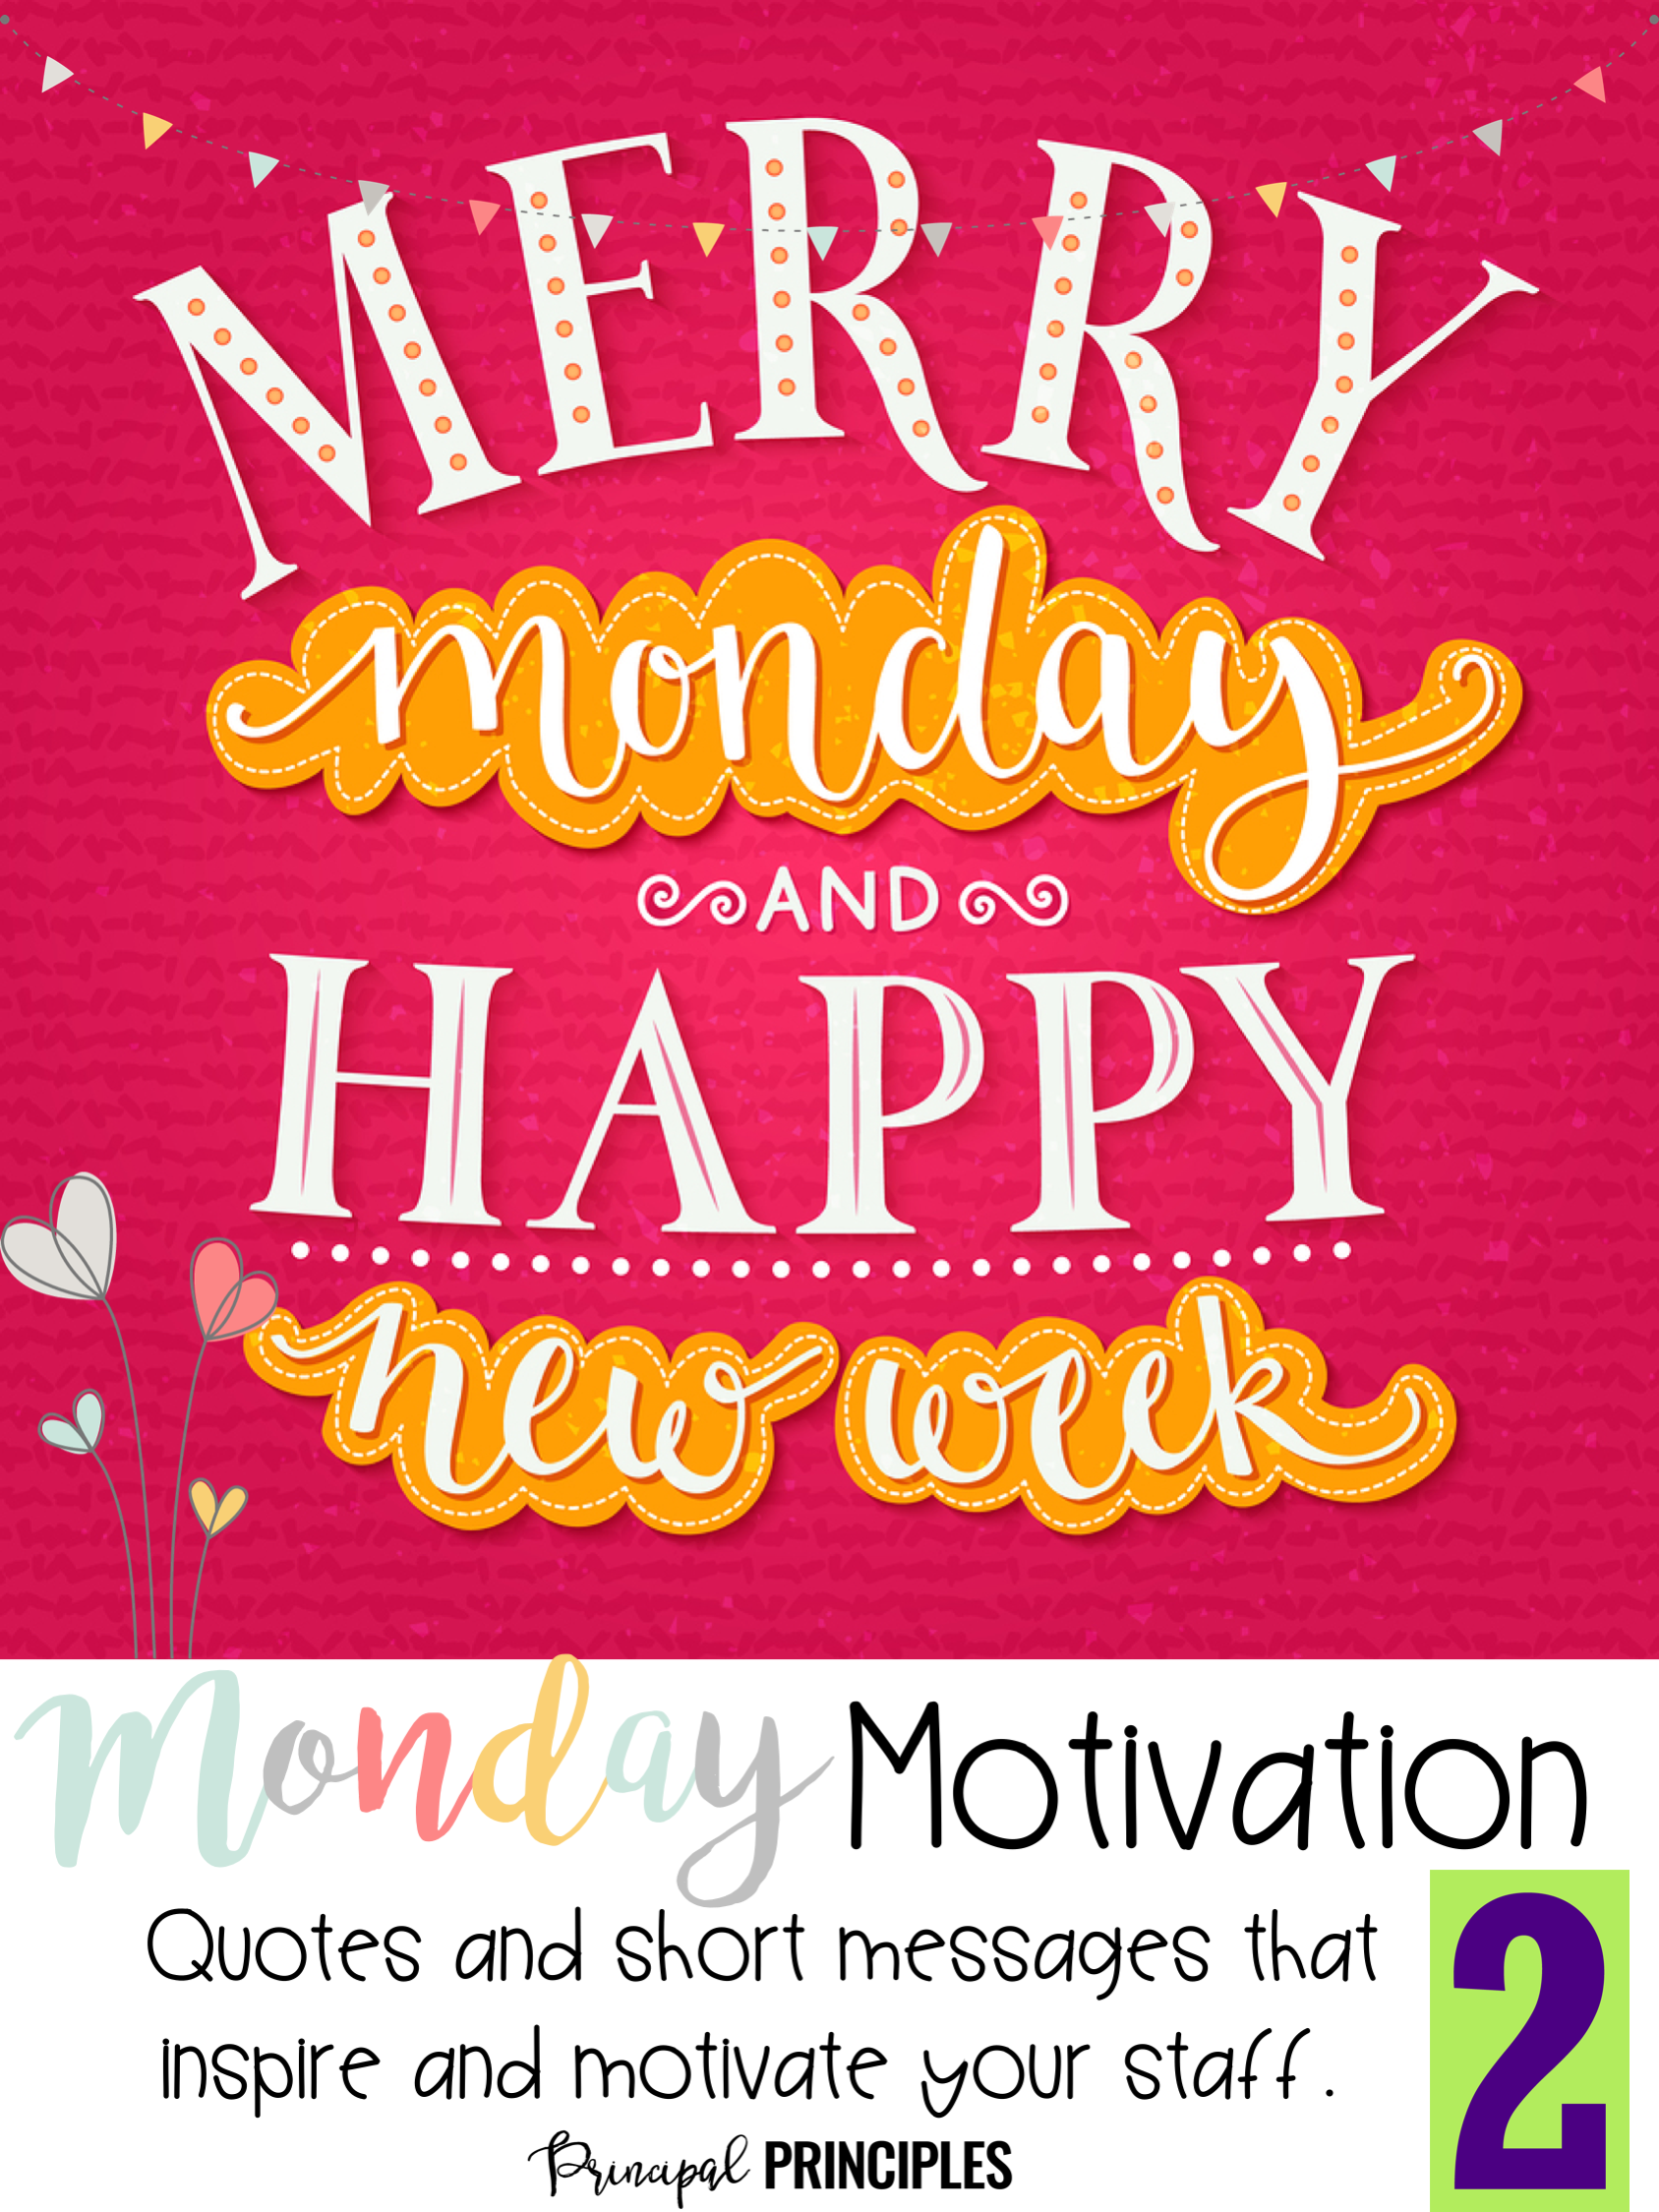 Monday Motivation Short Messages And Stories To Inspire And